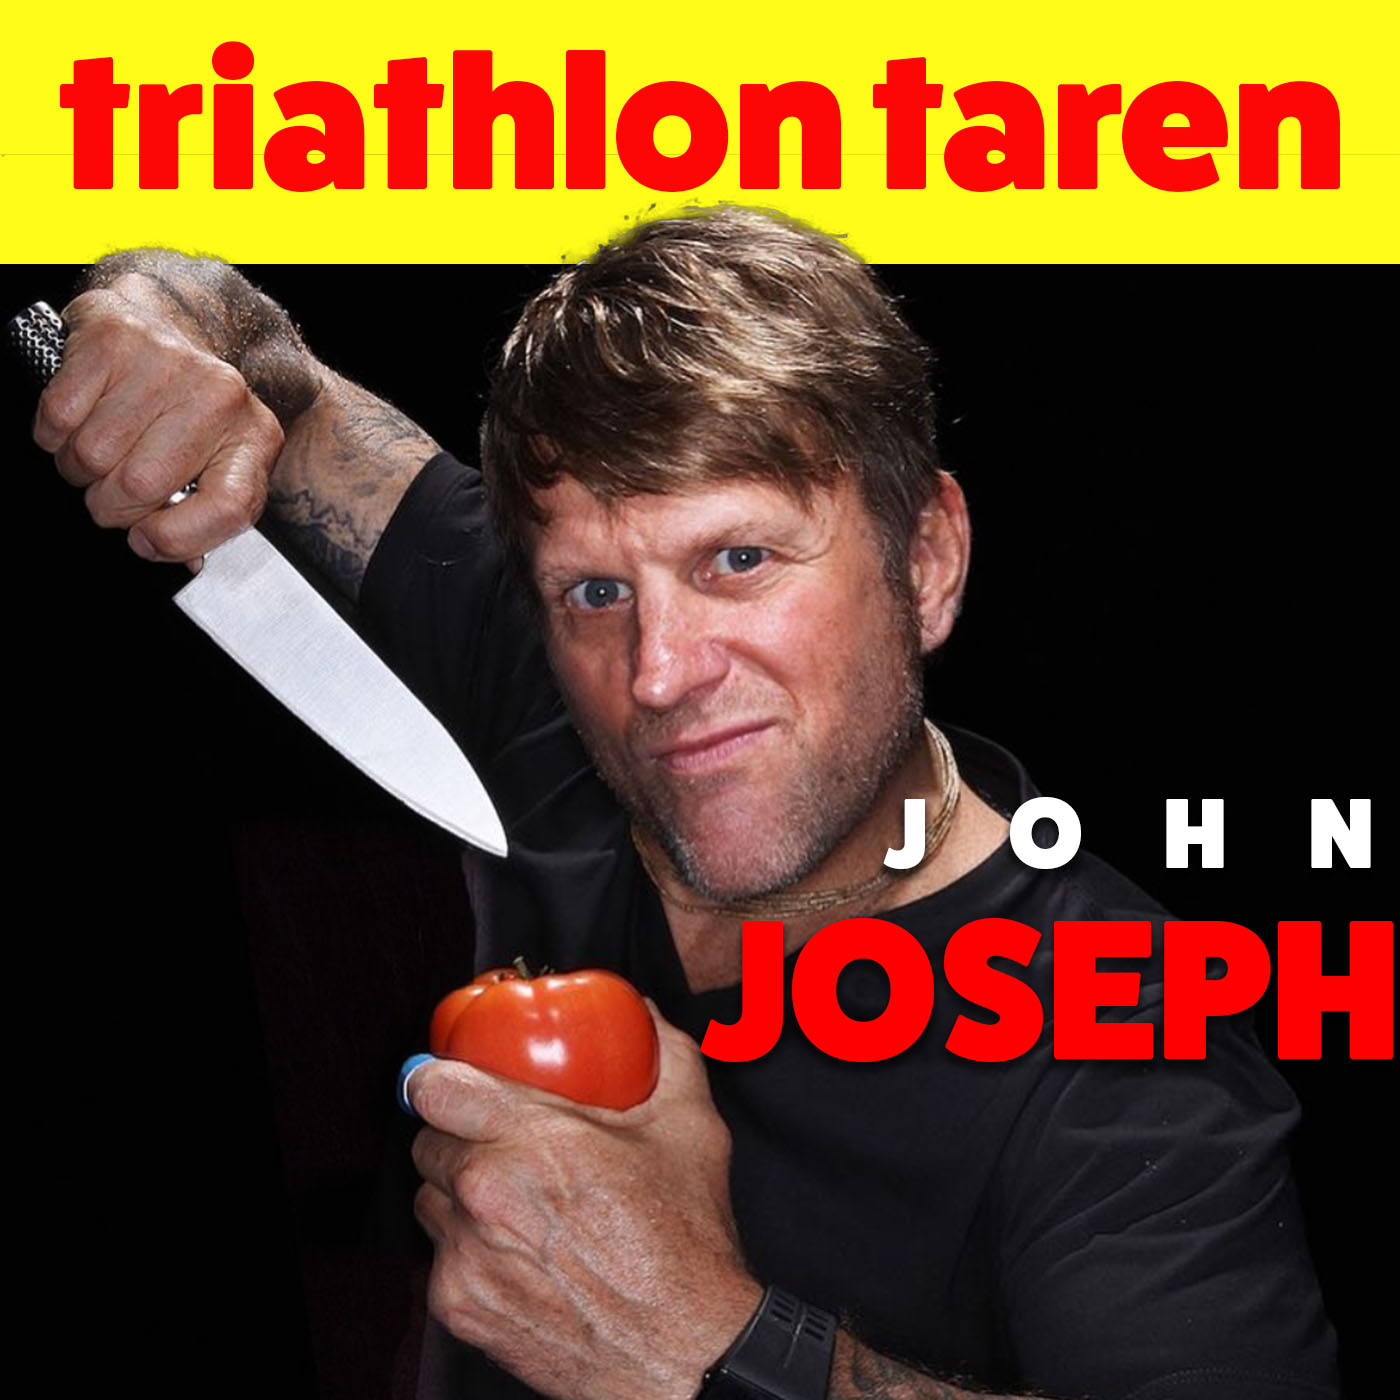 John Joseph: From Drug Dealing and Prison to Ironman Hawaii 2017